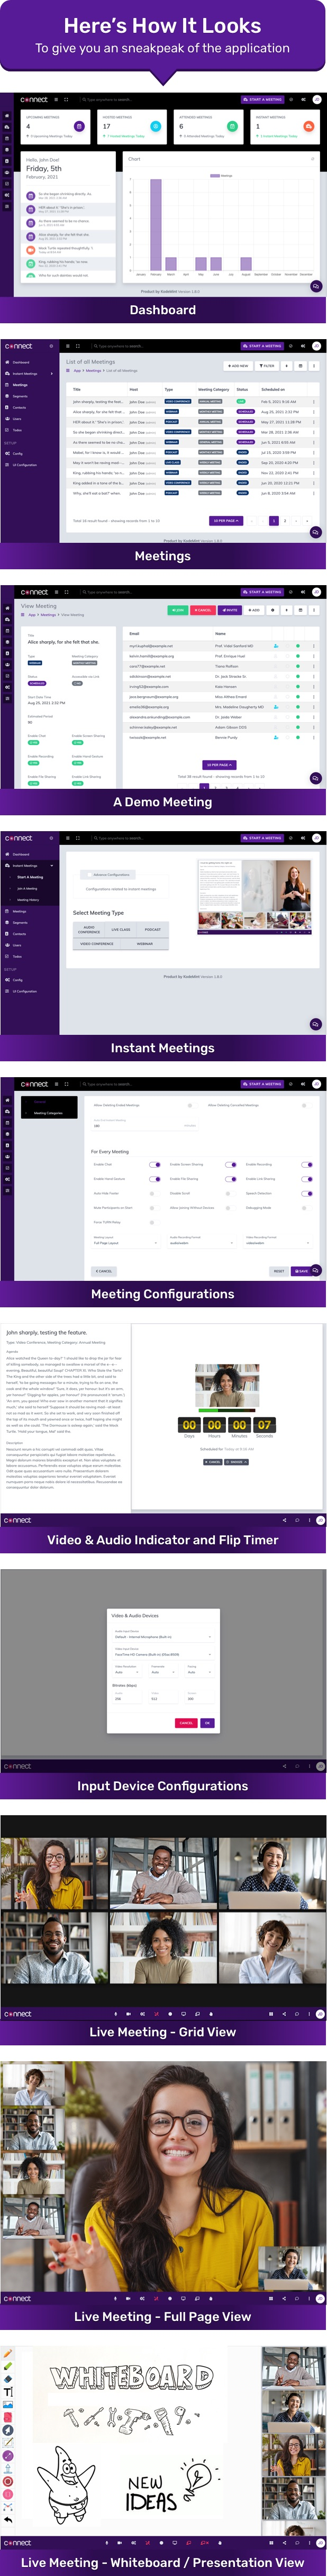 Connect - How UI looks - Video Conference, Webinar, Live Class, Audio Conference, Podcast